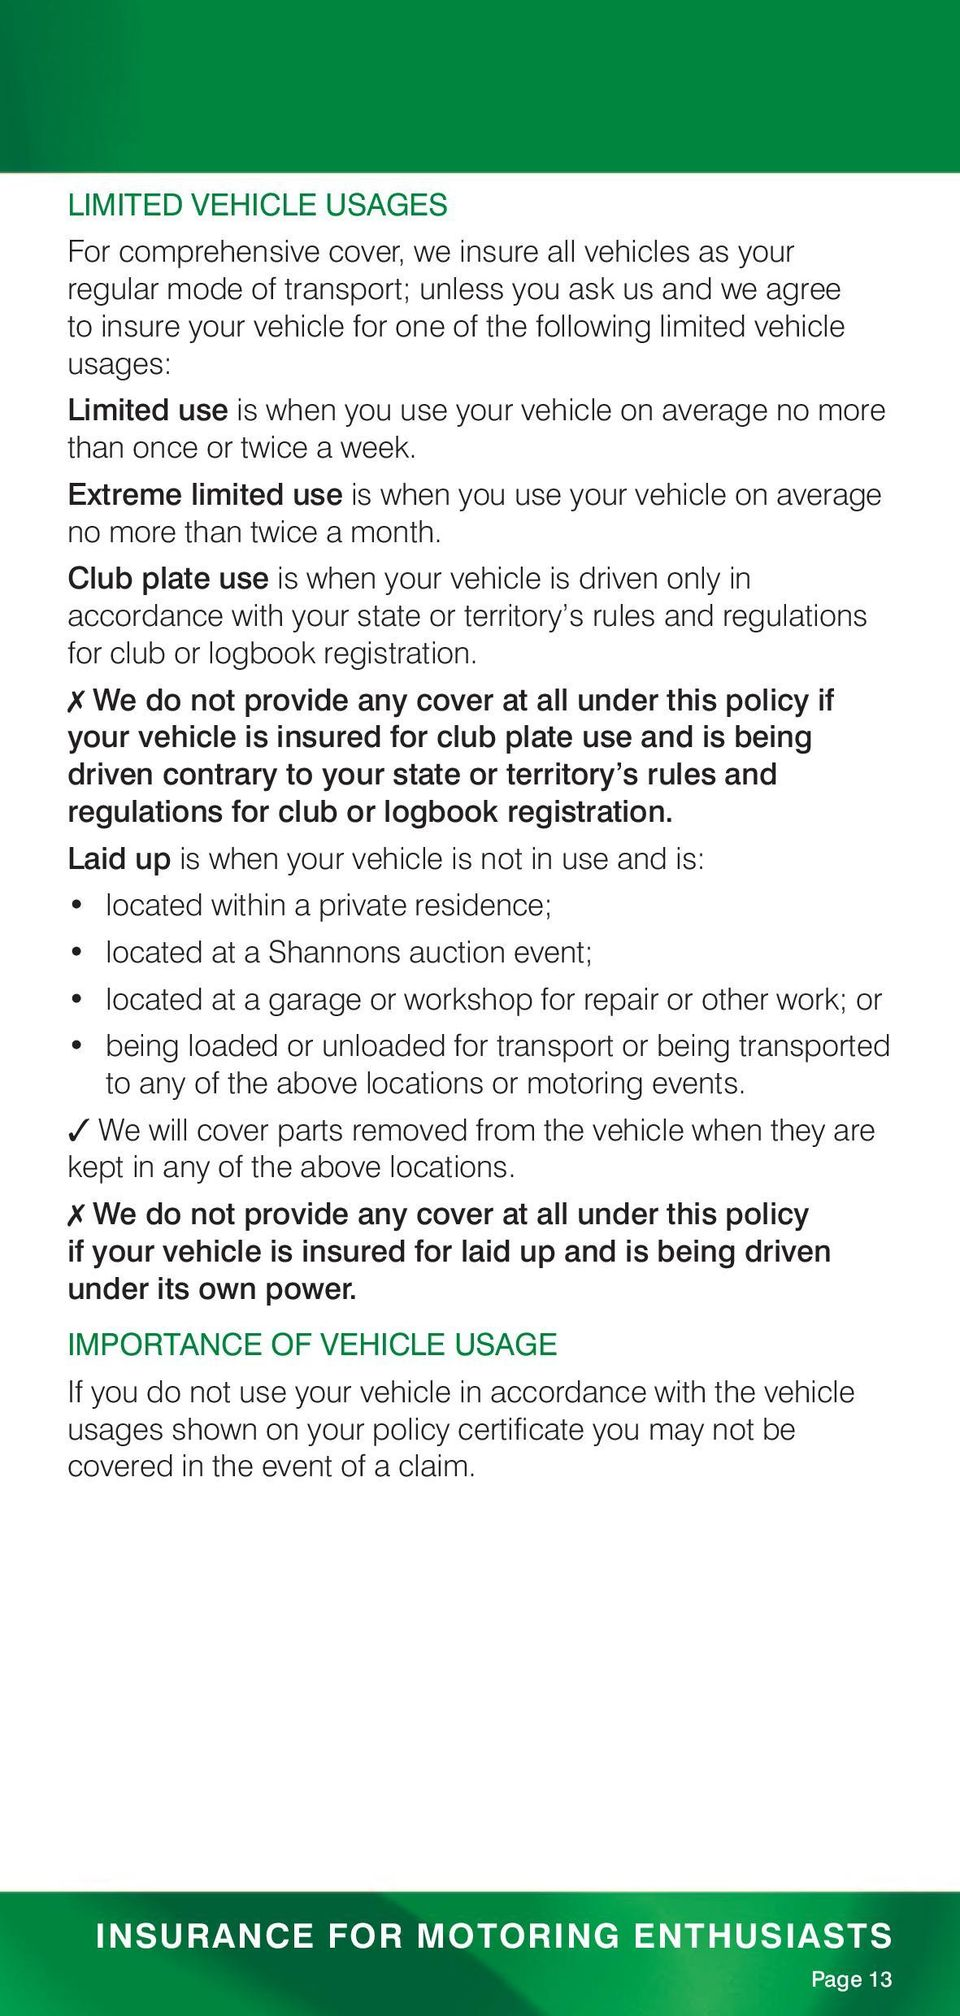 Club plate use is when your vehicle is driven only in accordance with your state or territory s rules and regulations for club or logbook registration.